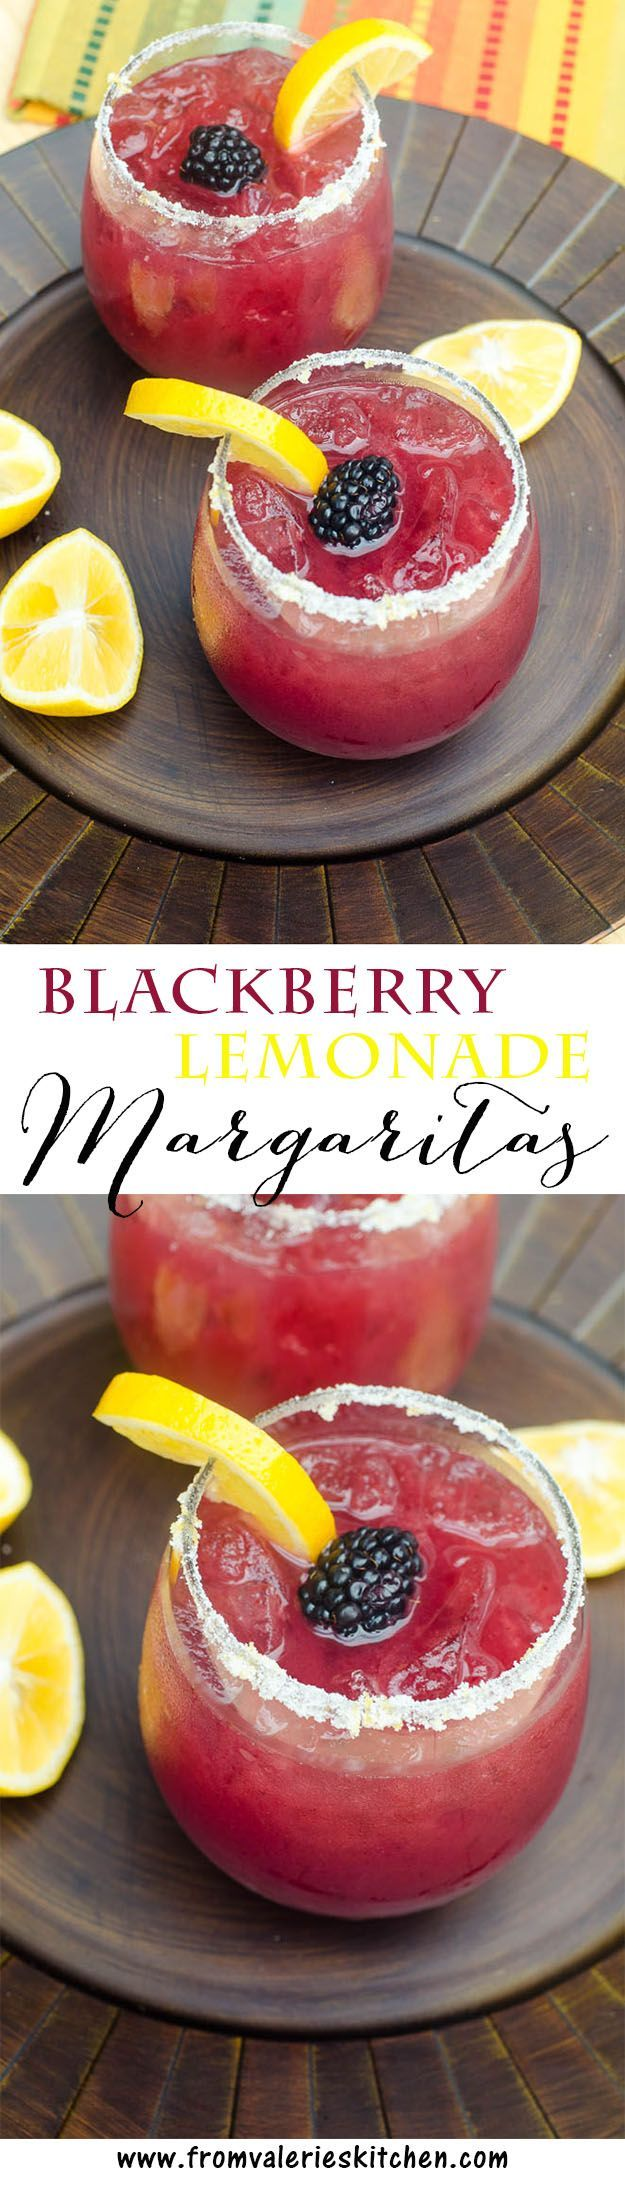 Blackberry Lemonade Margaritas - Tart, lightly sweet, and delicious. A great warm weather party drink!